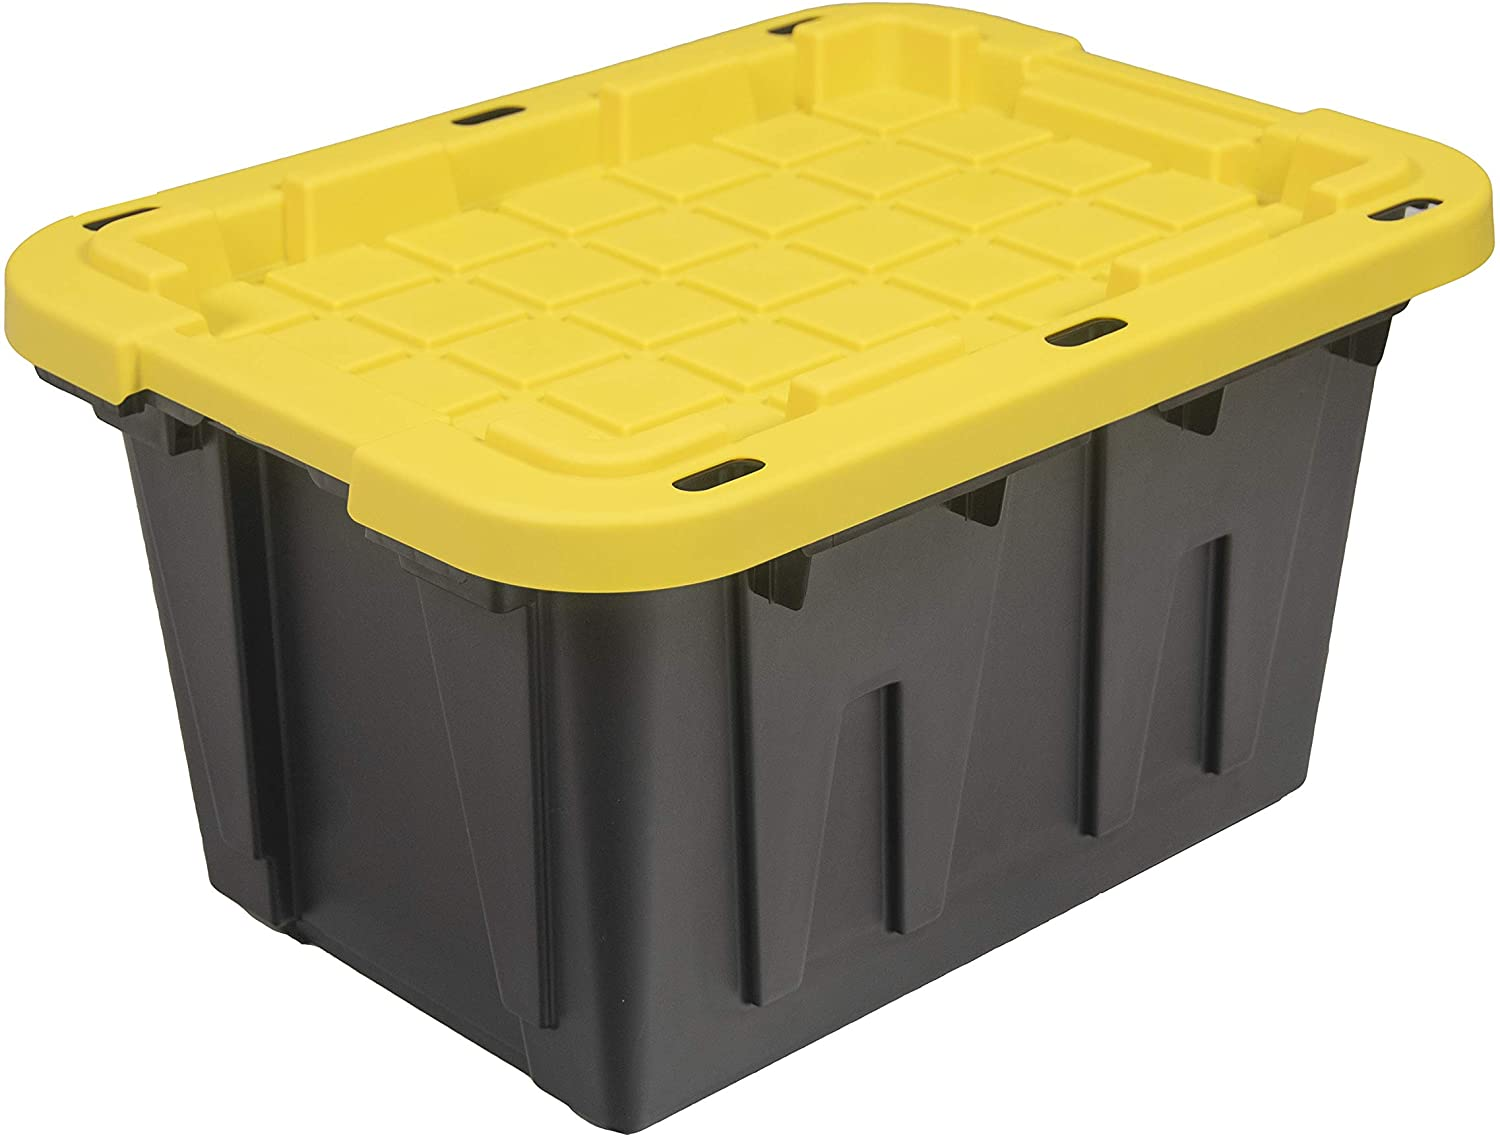 Original BLACK & YELLOW 12-Gallon Storage Containers with Lids, Stackable (4 Pack)